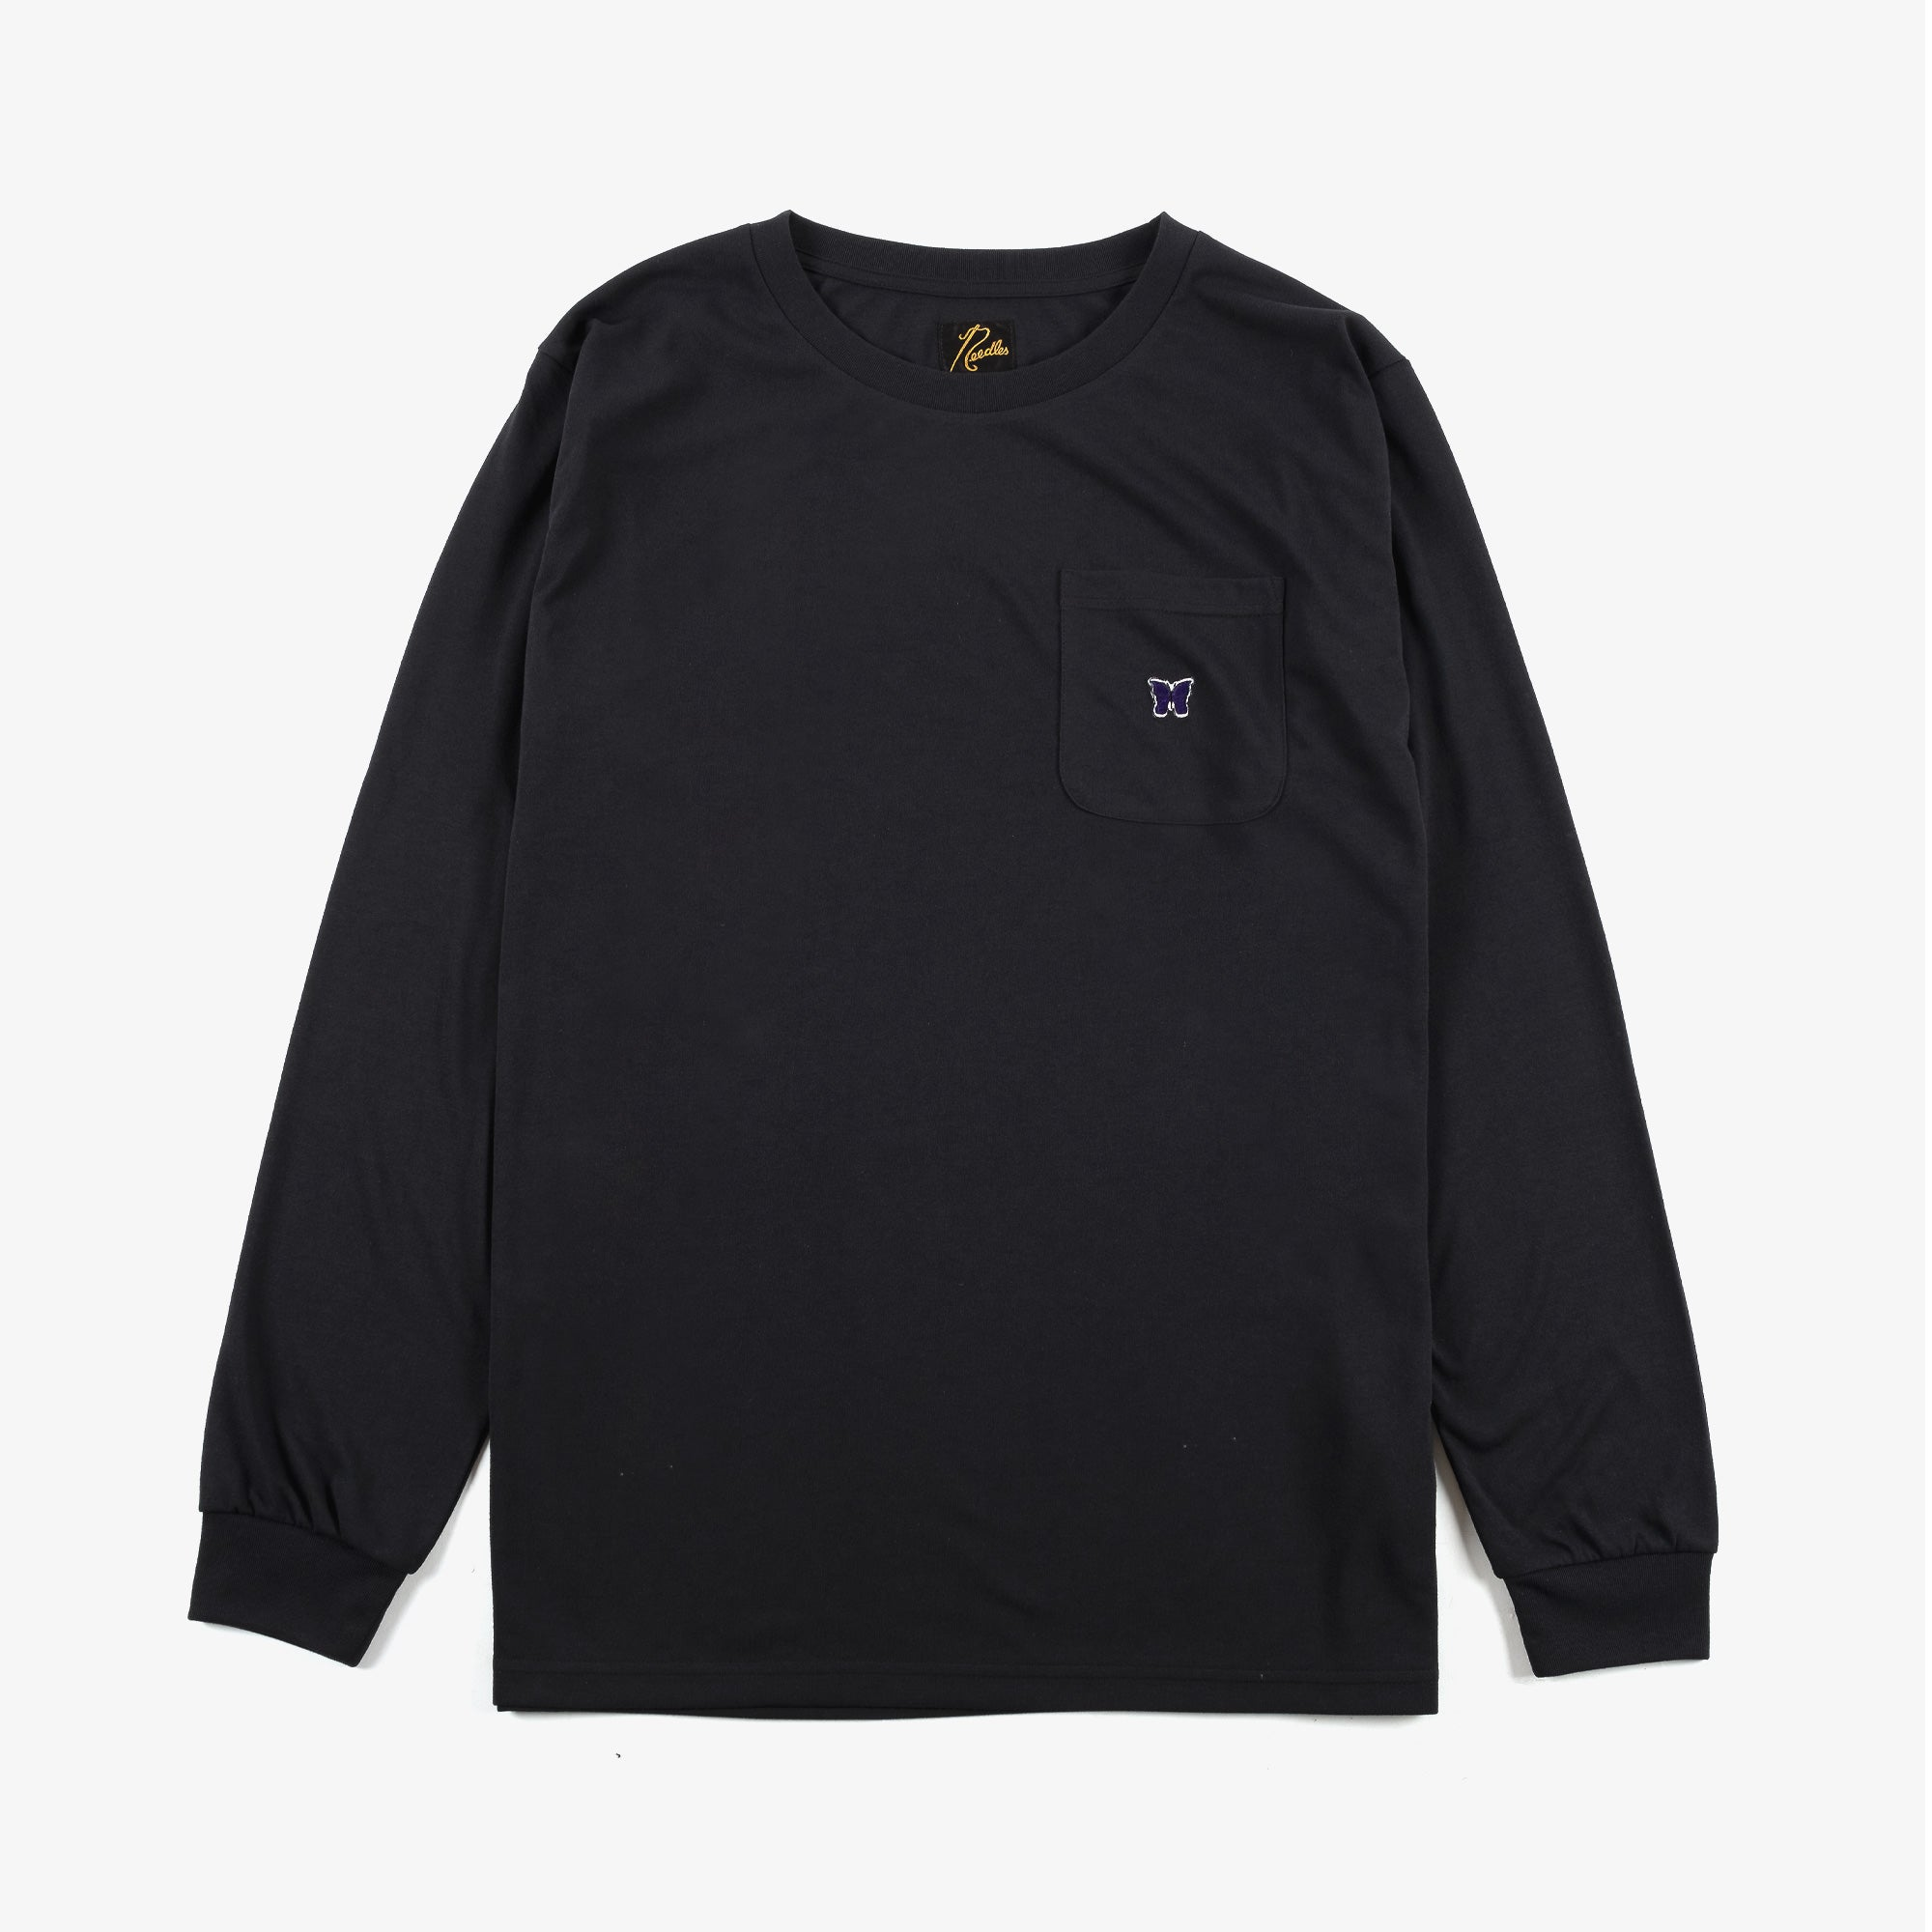 Needles M' L/S Crew Neck T-Shirt - Black 1